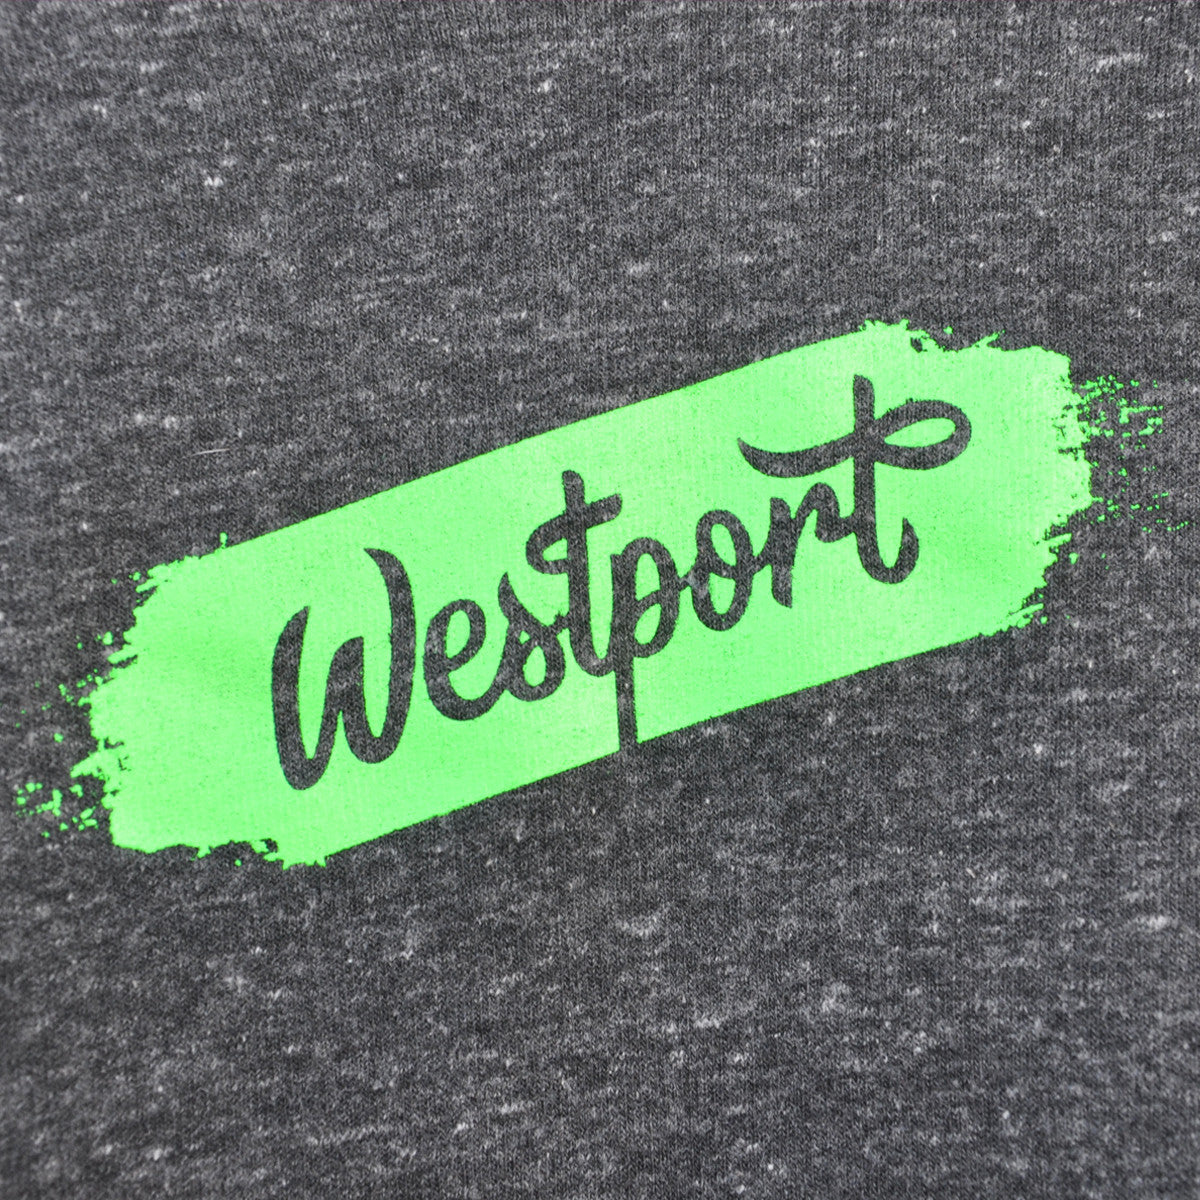 Westport Sweatshirt by Townee - Youth Playground Hoodie (detail)